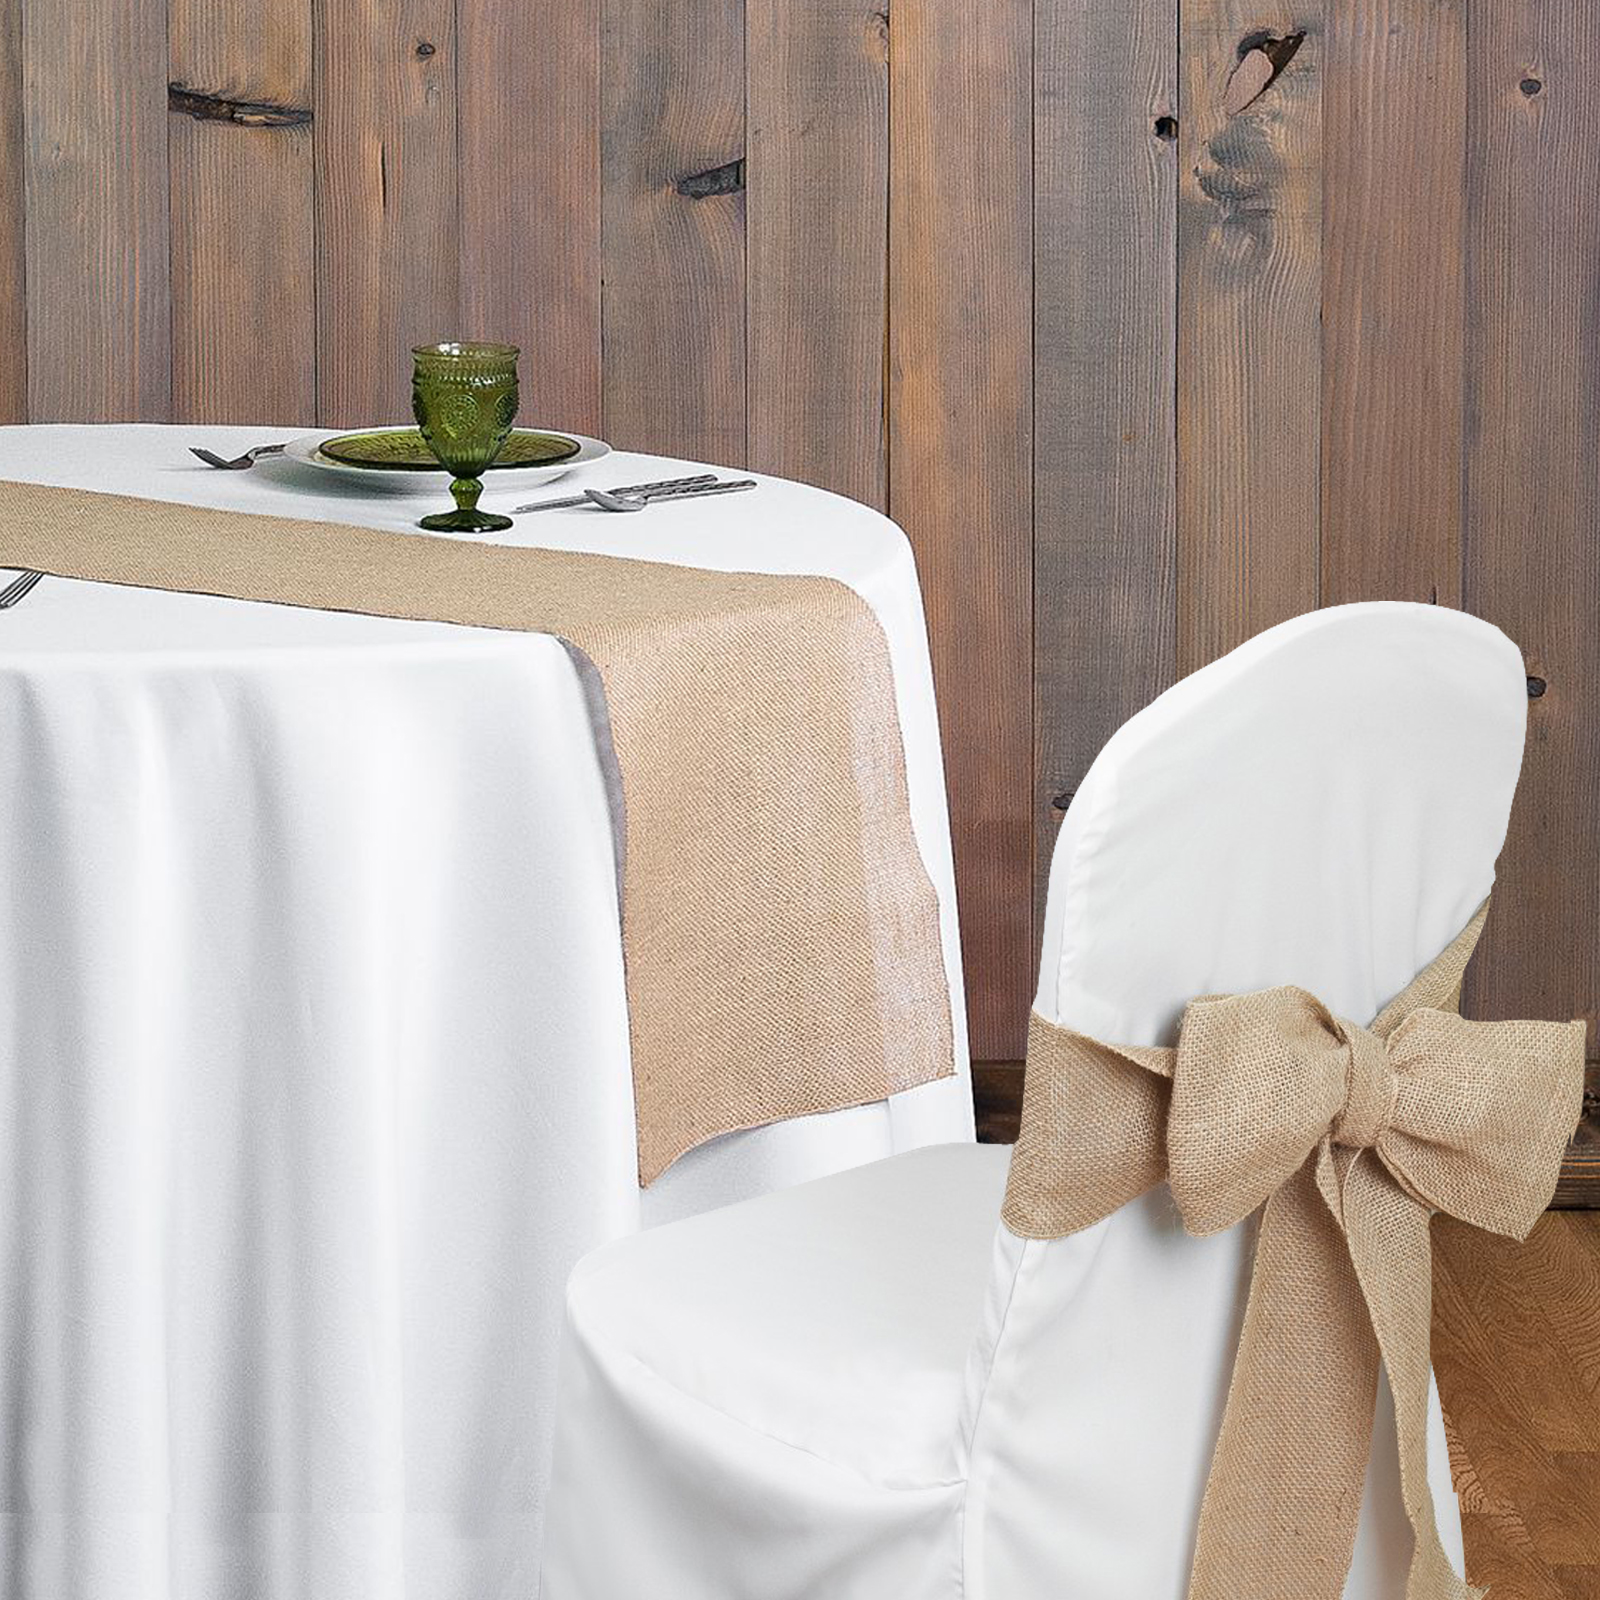 Rustic theme Wedding Decoration supply contain Burlap Chair Sashes jute Tie Bow burlap table runner Burlap Lace Tableware Pouch